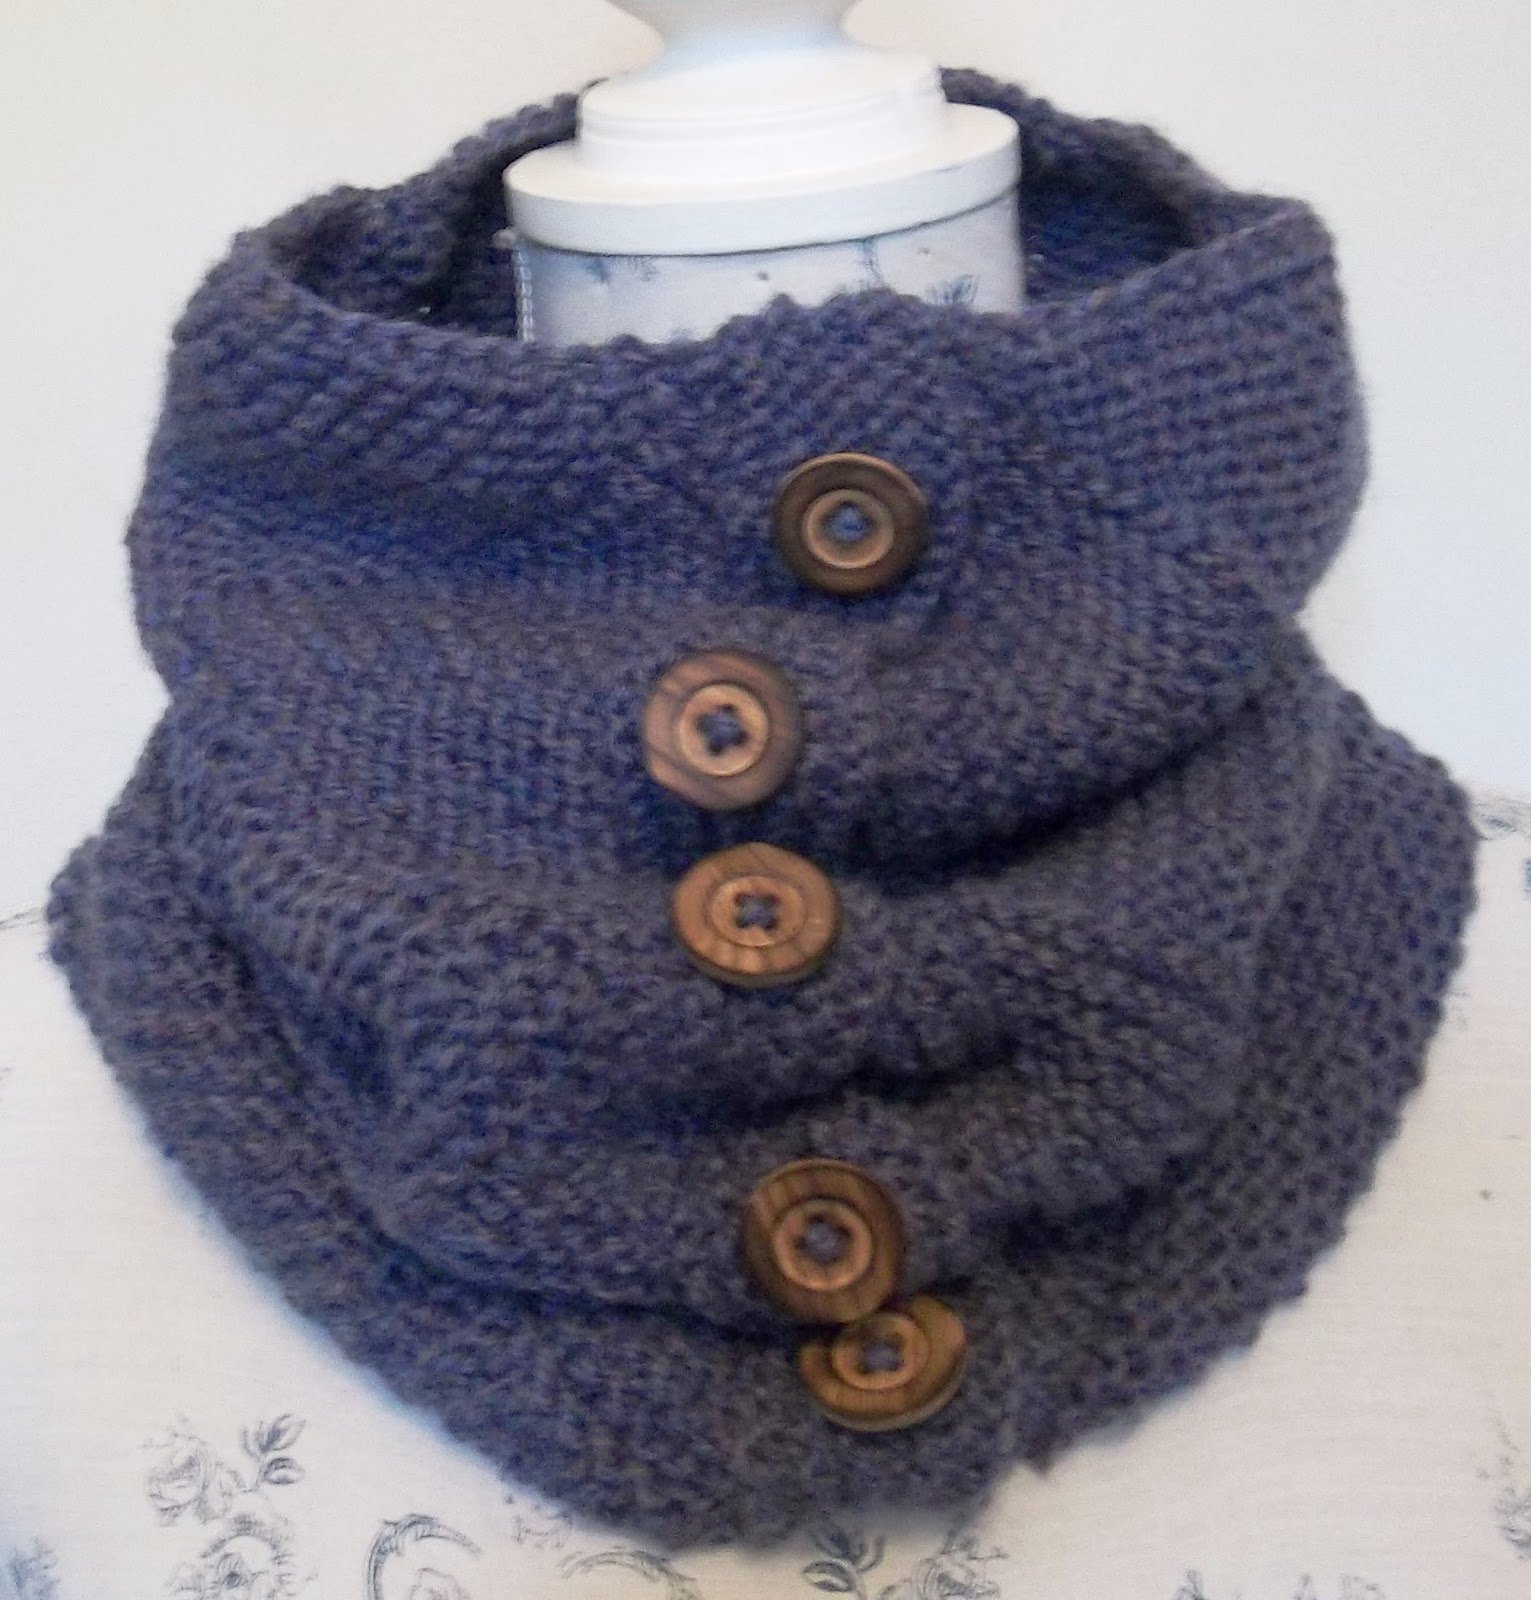 Knit Pattern Cowl Neck Warmer : The Design Studio: HAND KNITTING PATTERNS. ARAN. COWLS, HATS, SCARVES AND NEC...